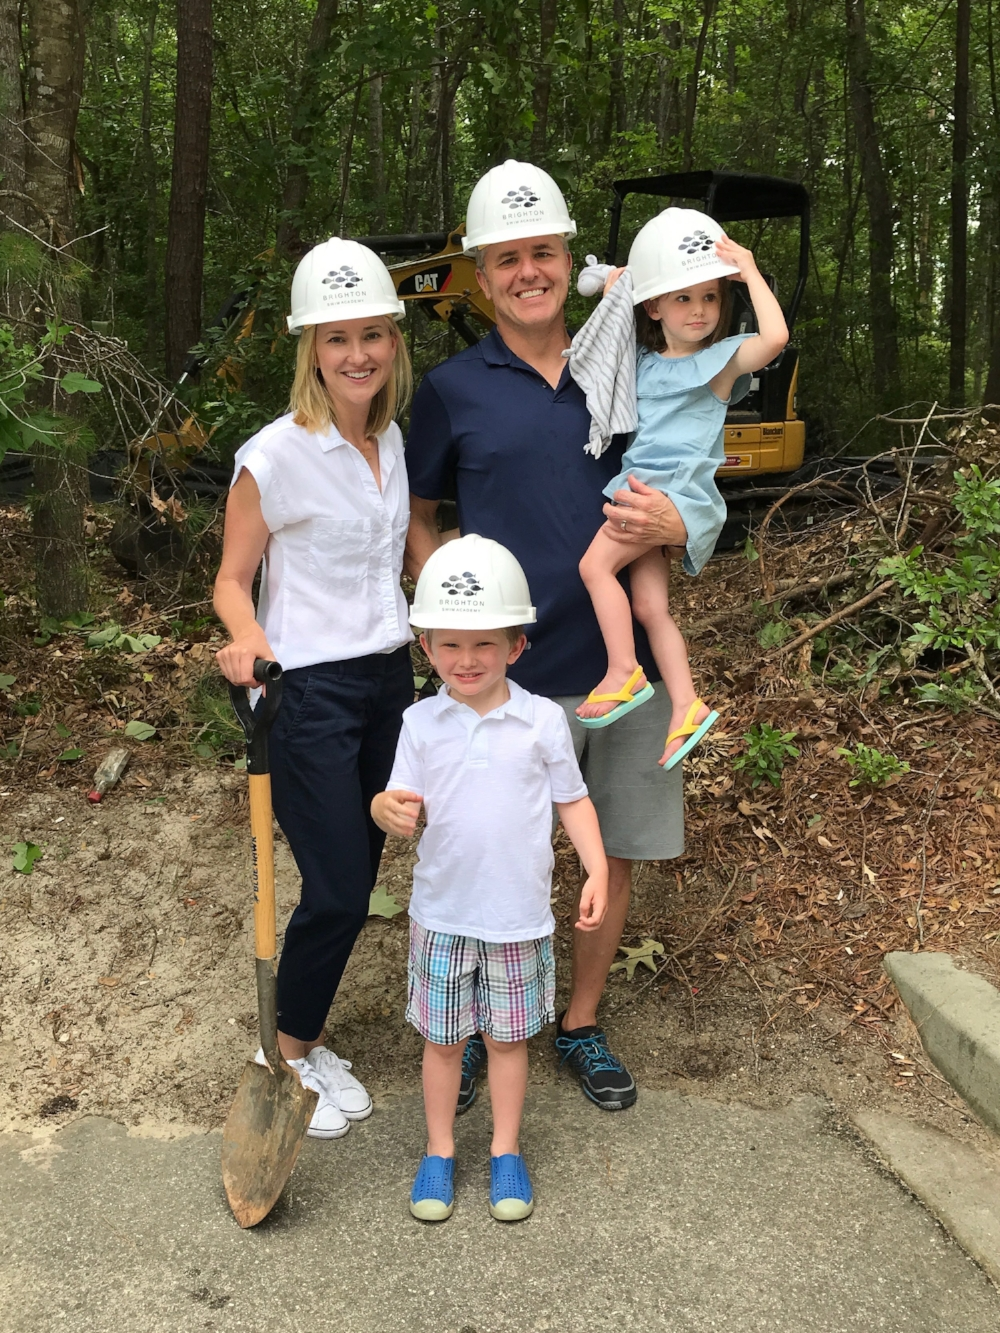 May 15, 2018: Family photo before the property is cleared (thank you Faye Bourdon for the hard hats!)